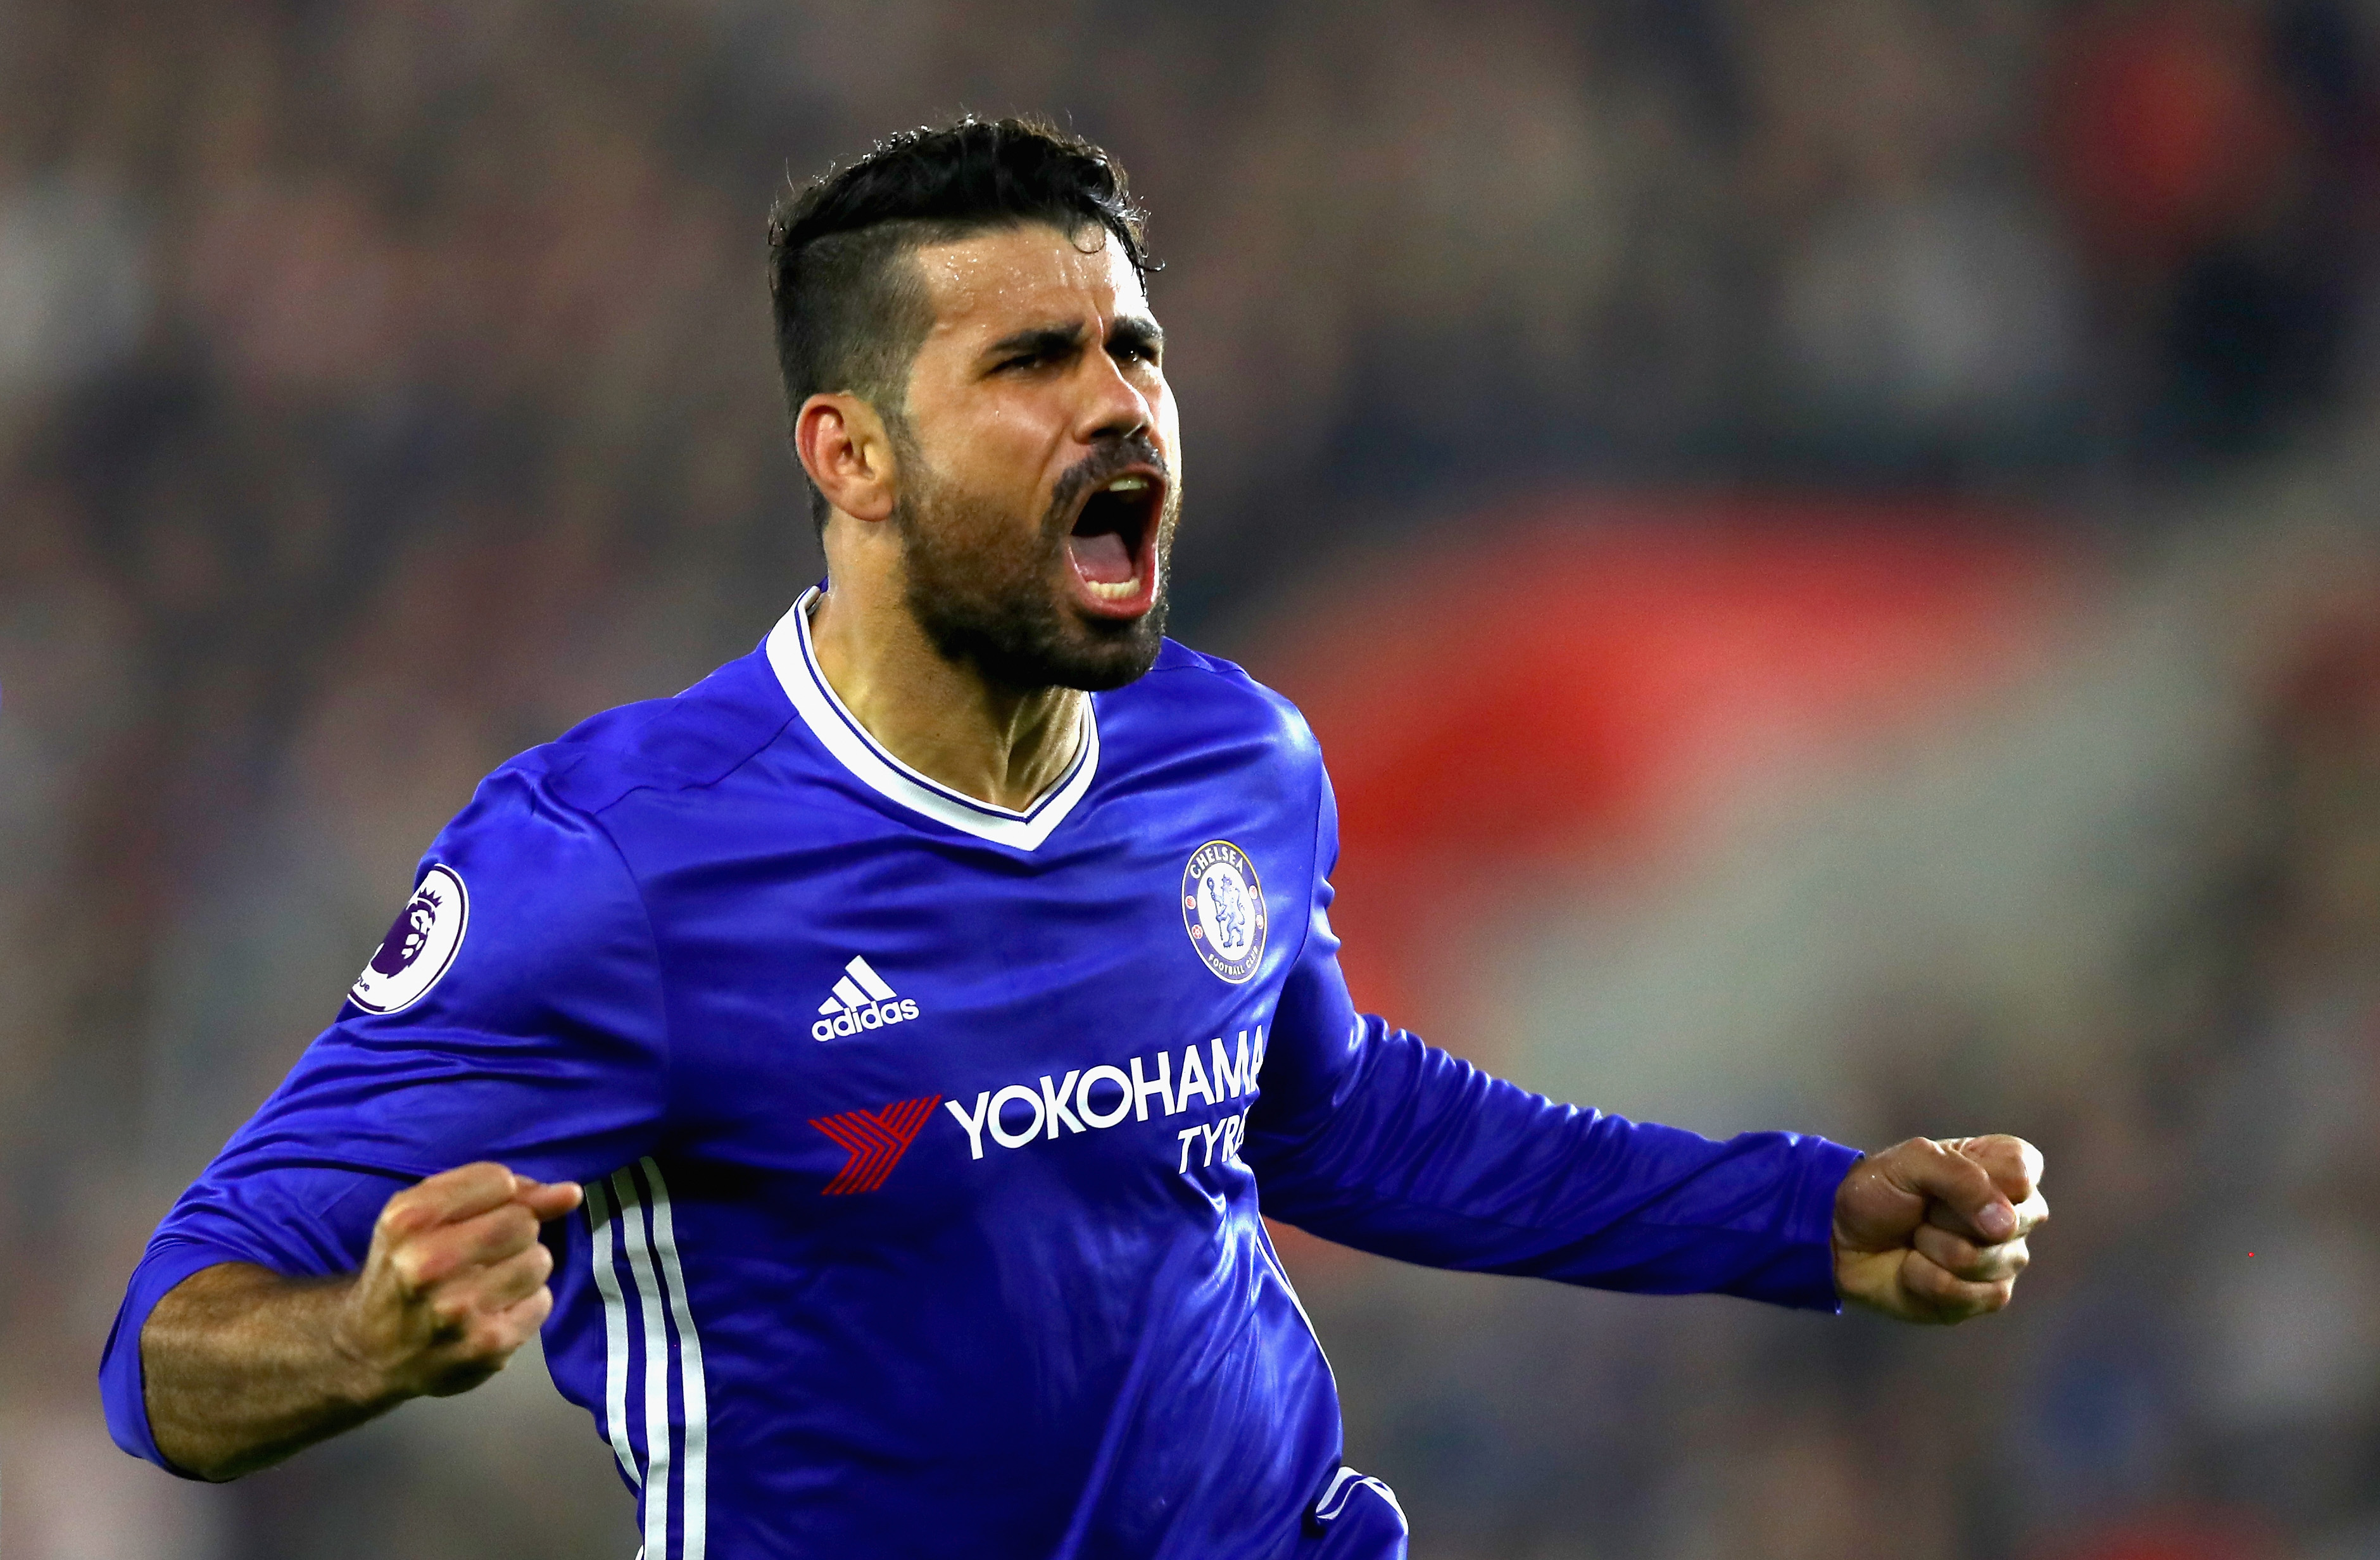 Revealed: The stats that show that Chelsea were right to keep Diego Costa and not sign Romelu Lukaku this summer